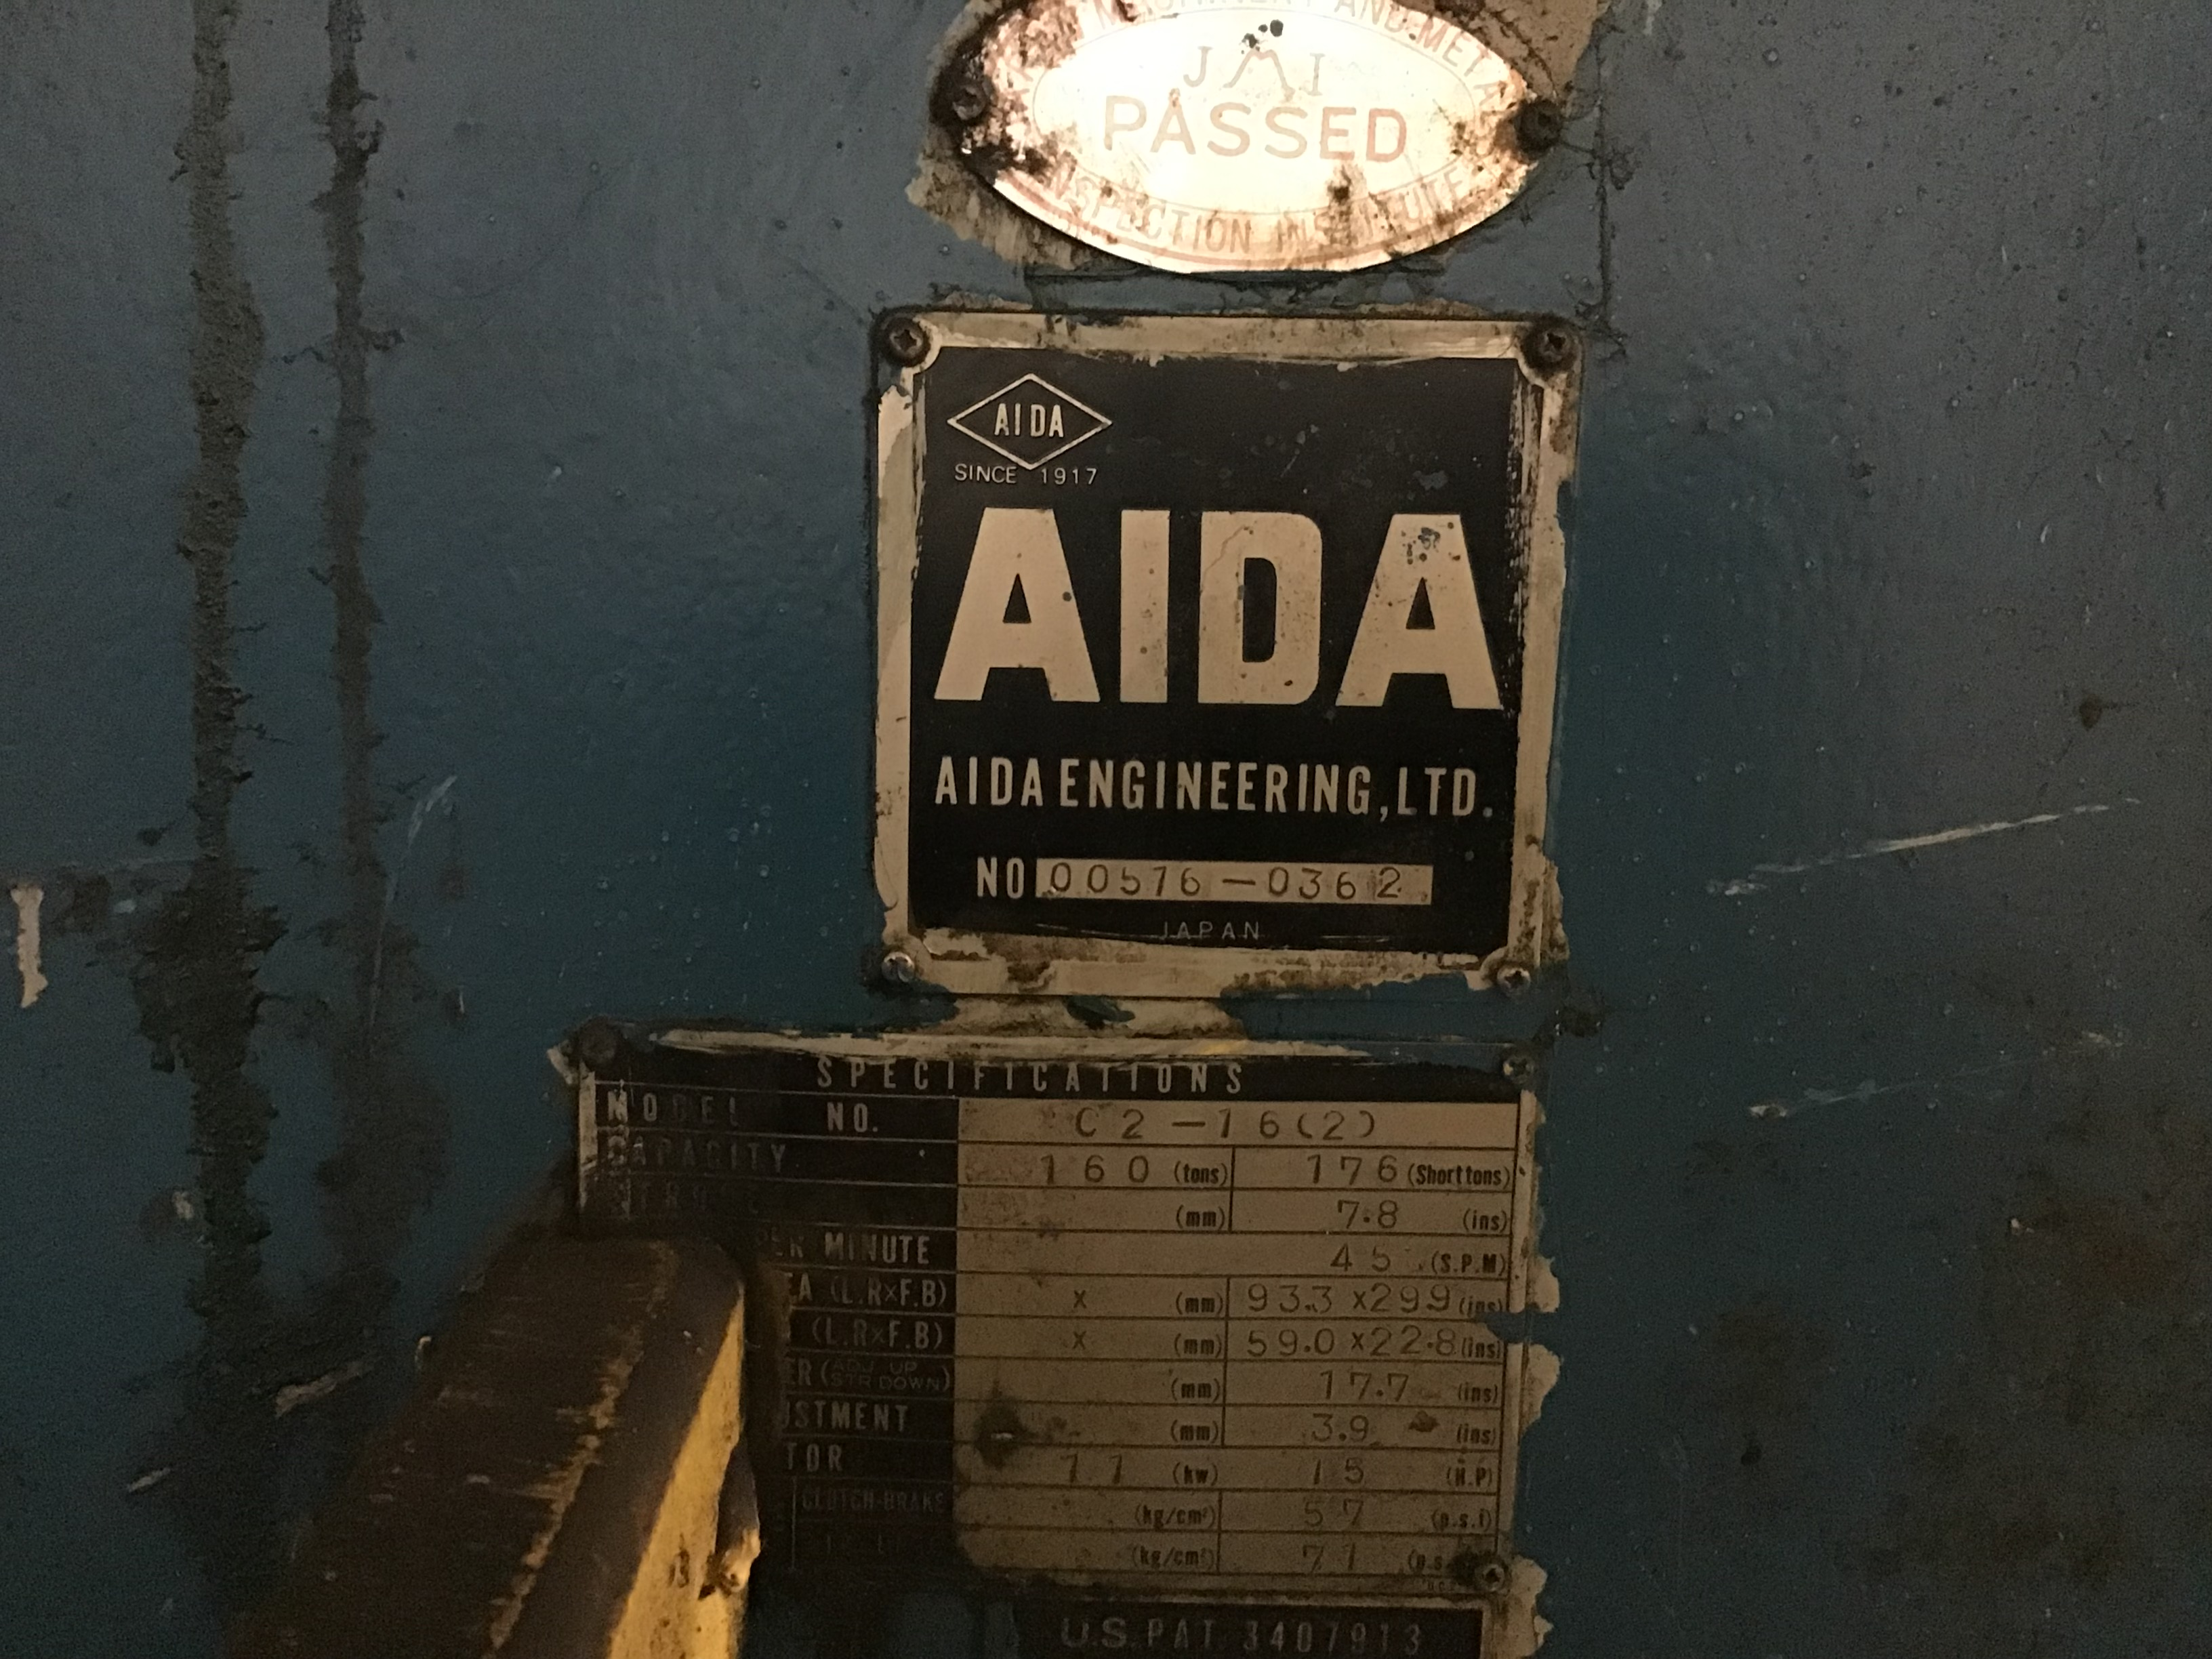 176 ton Aida data